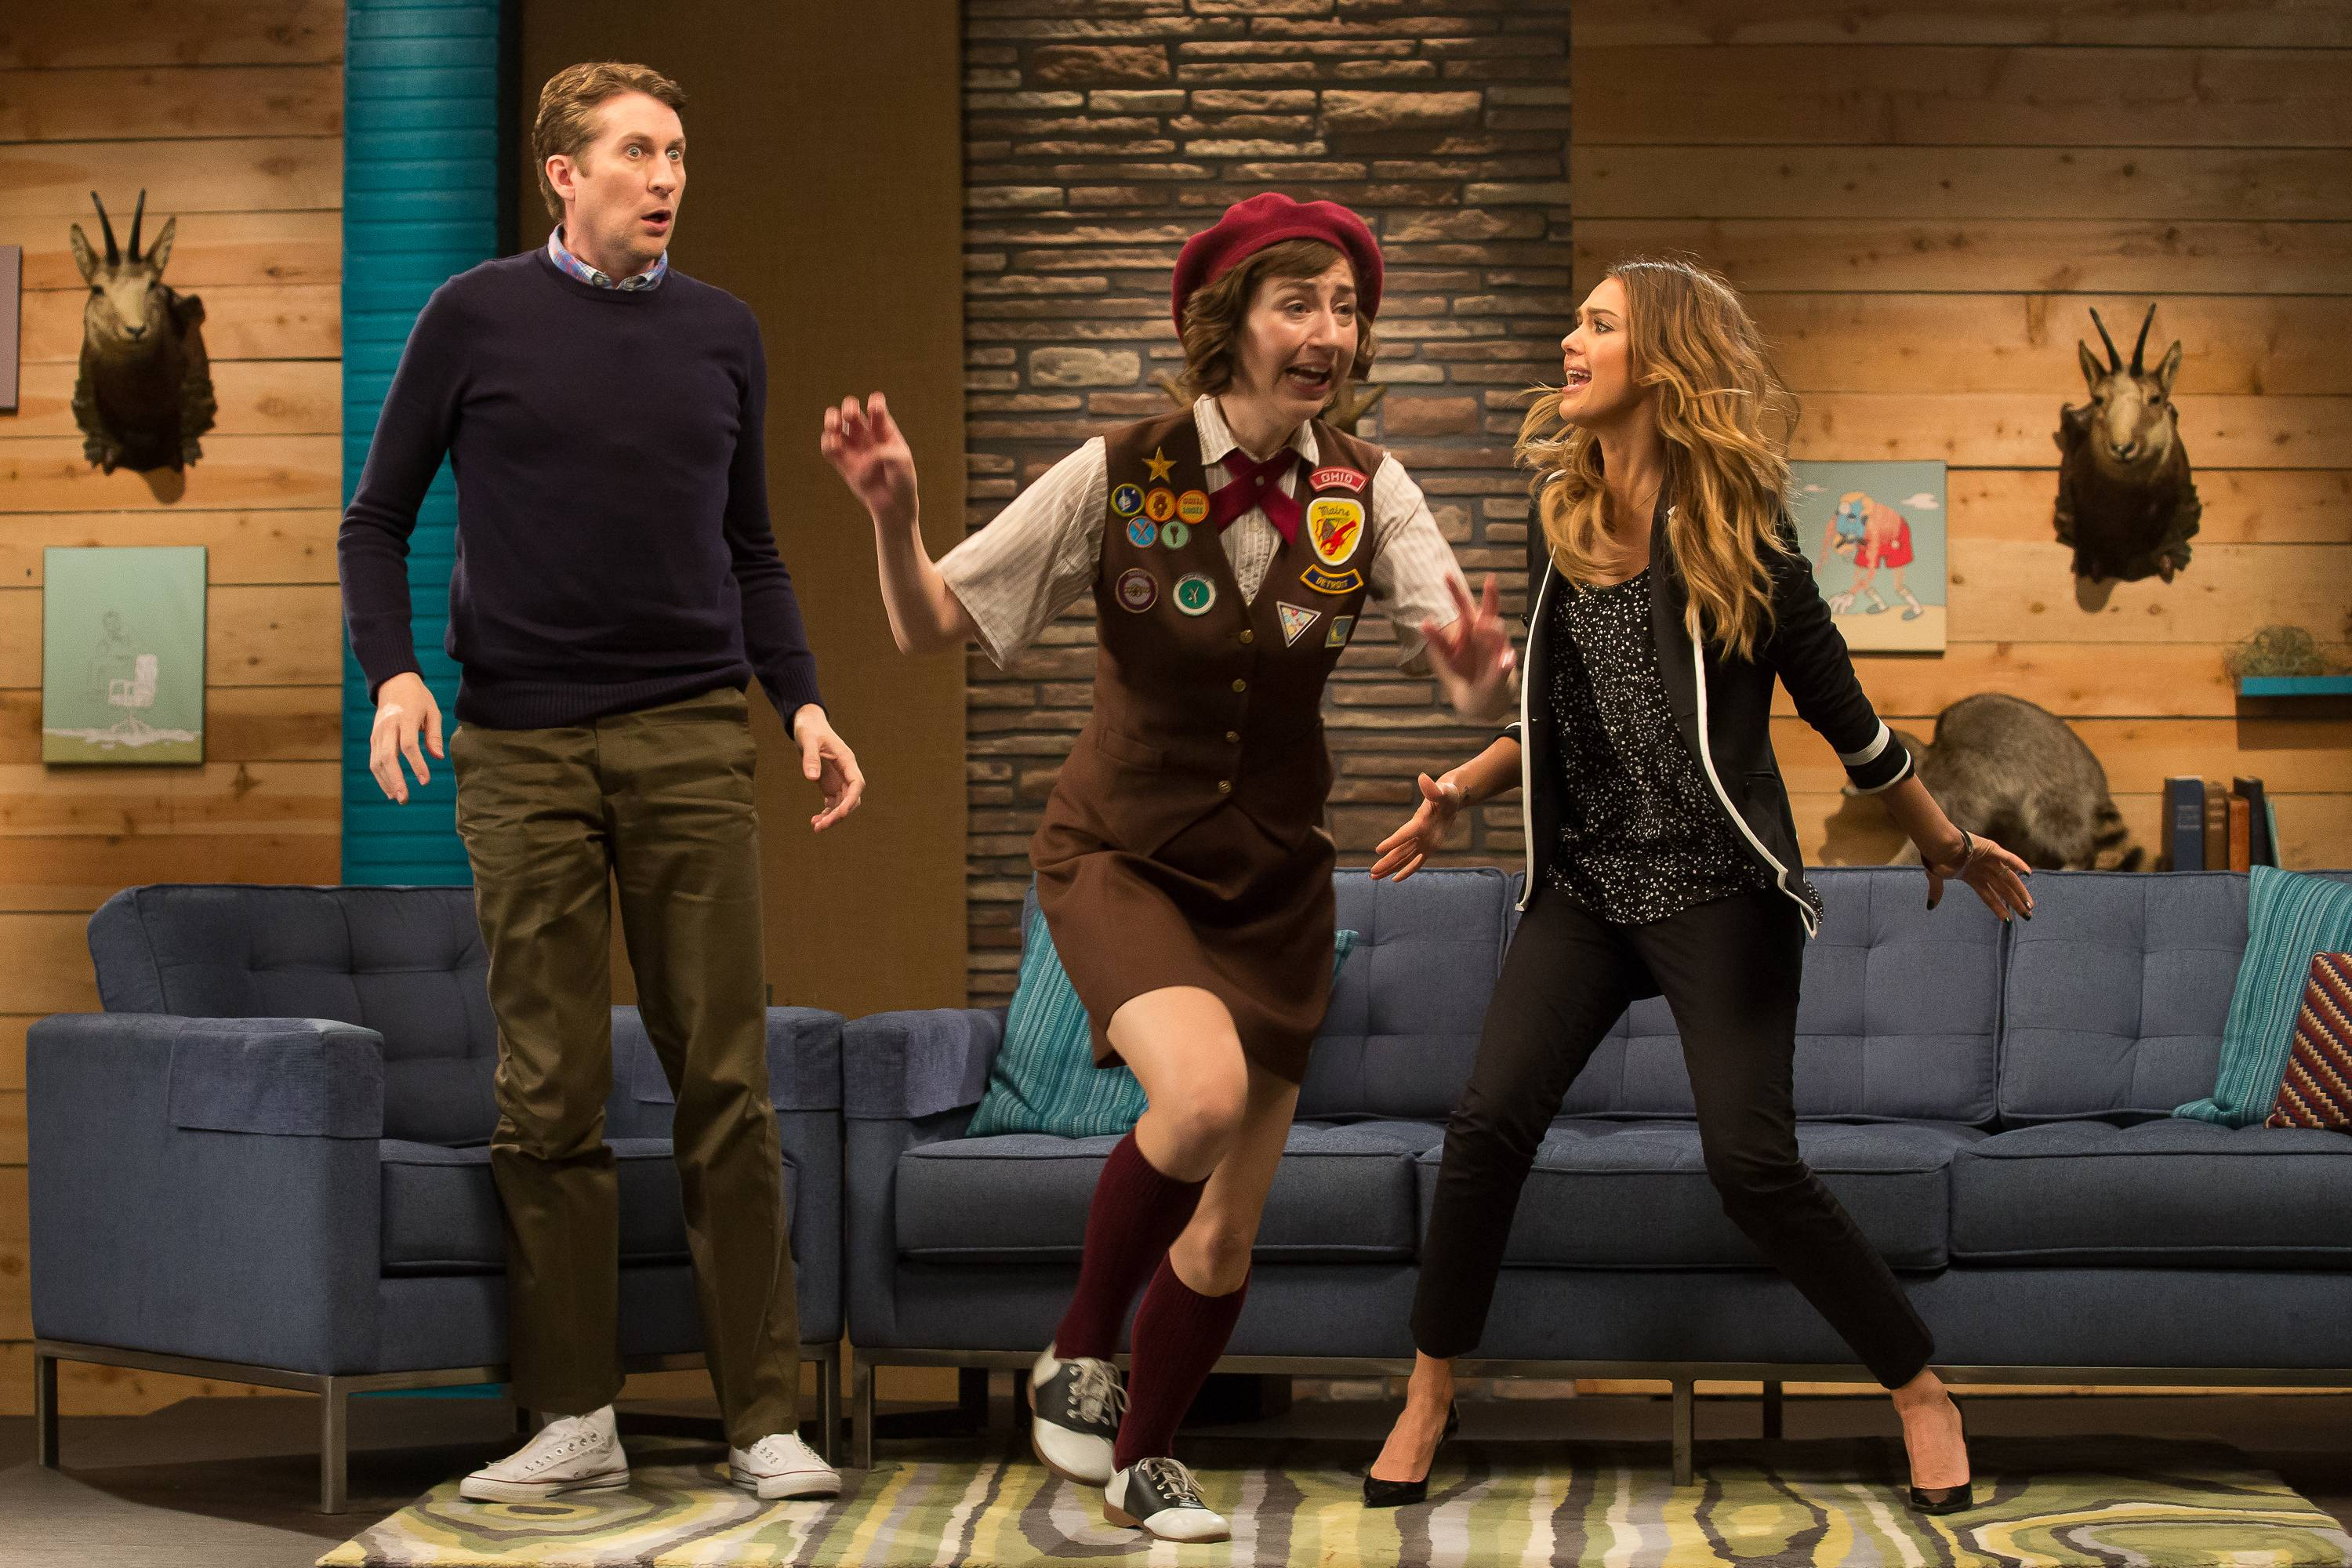 Two girls jump on Comedy Bang Bang